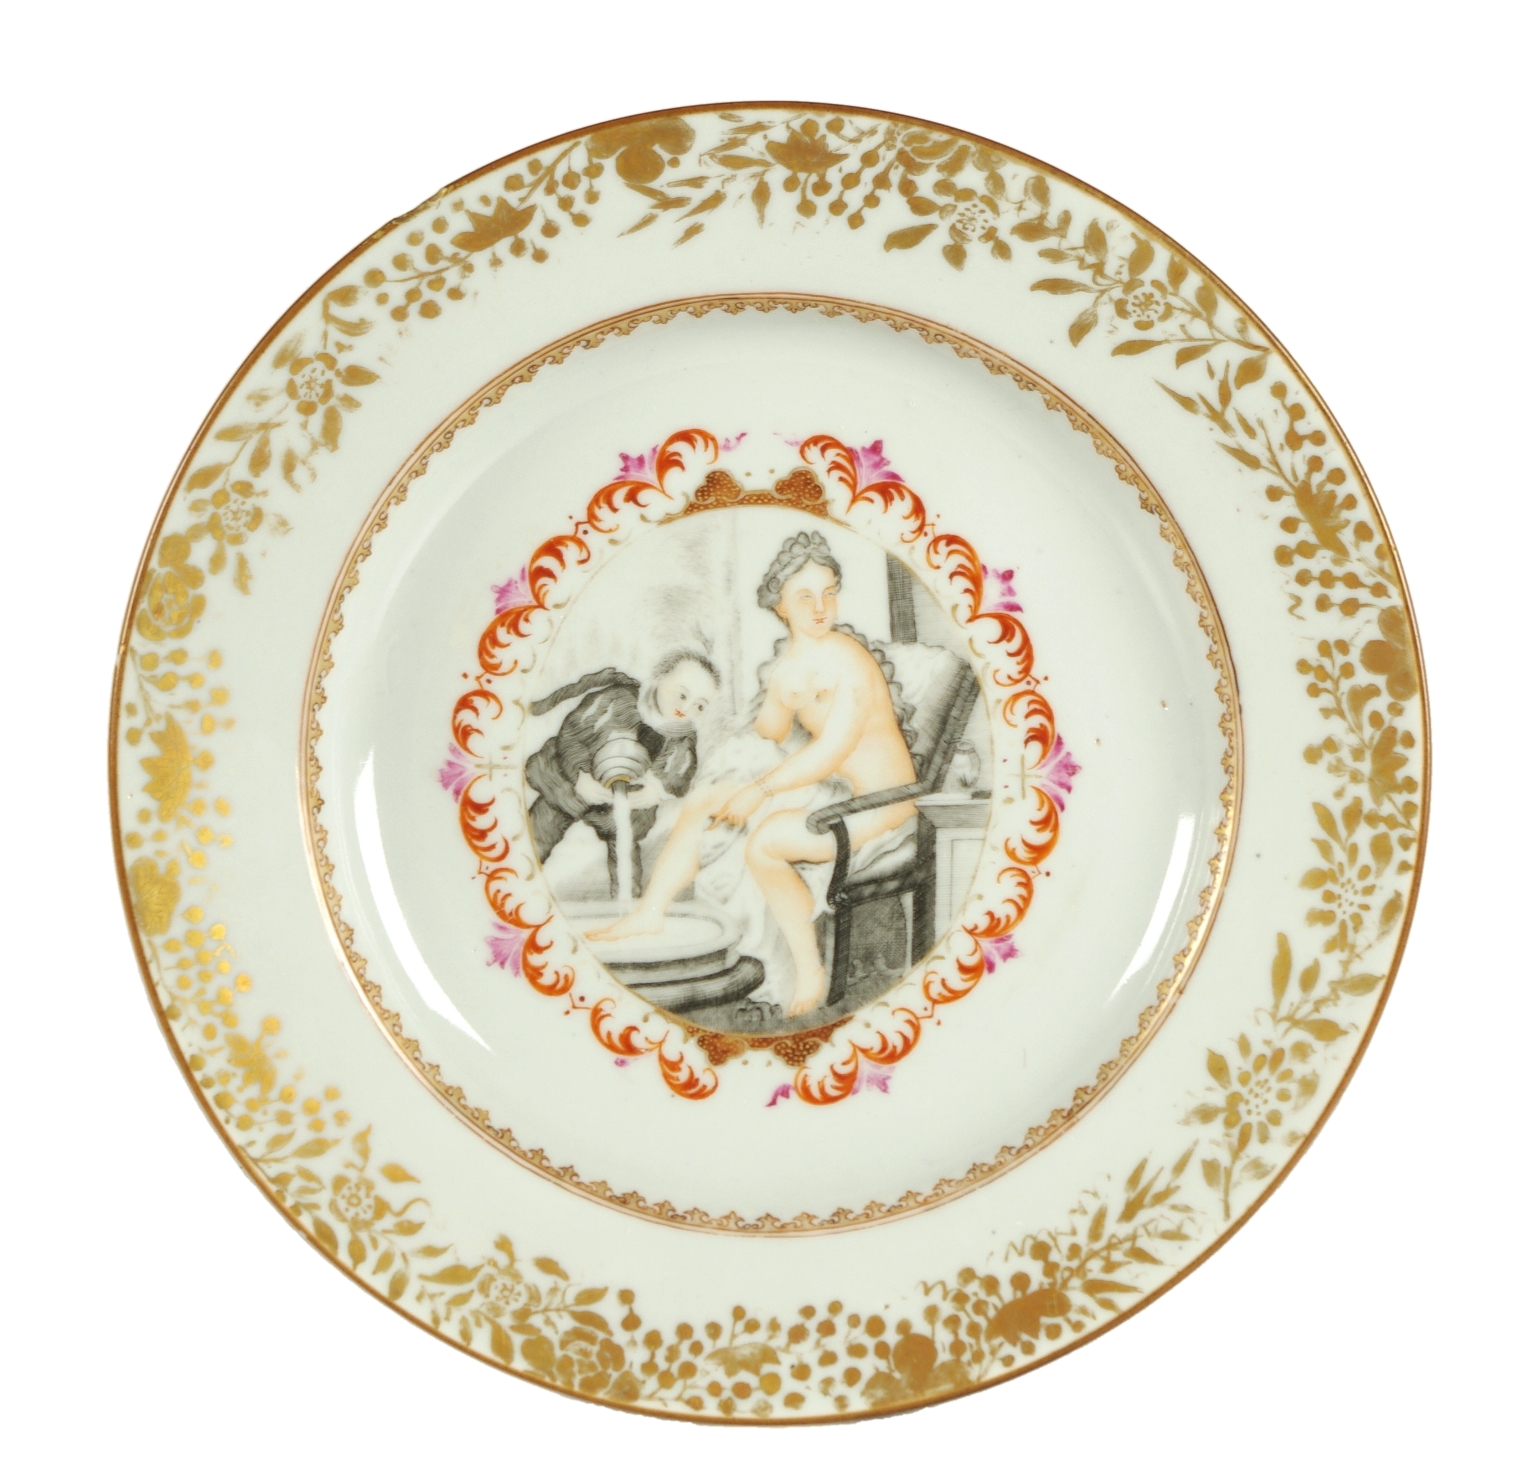 View 1: Chinese Export Plate Made for the Continental Market